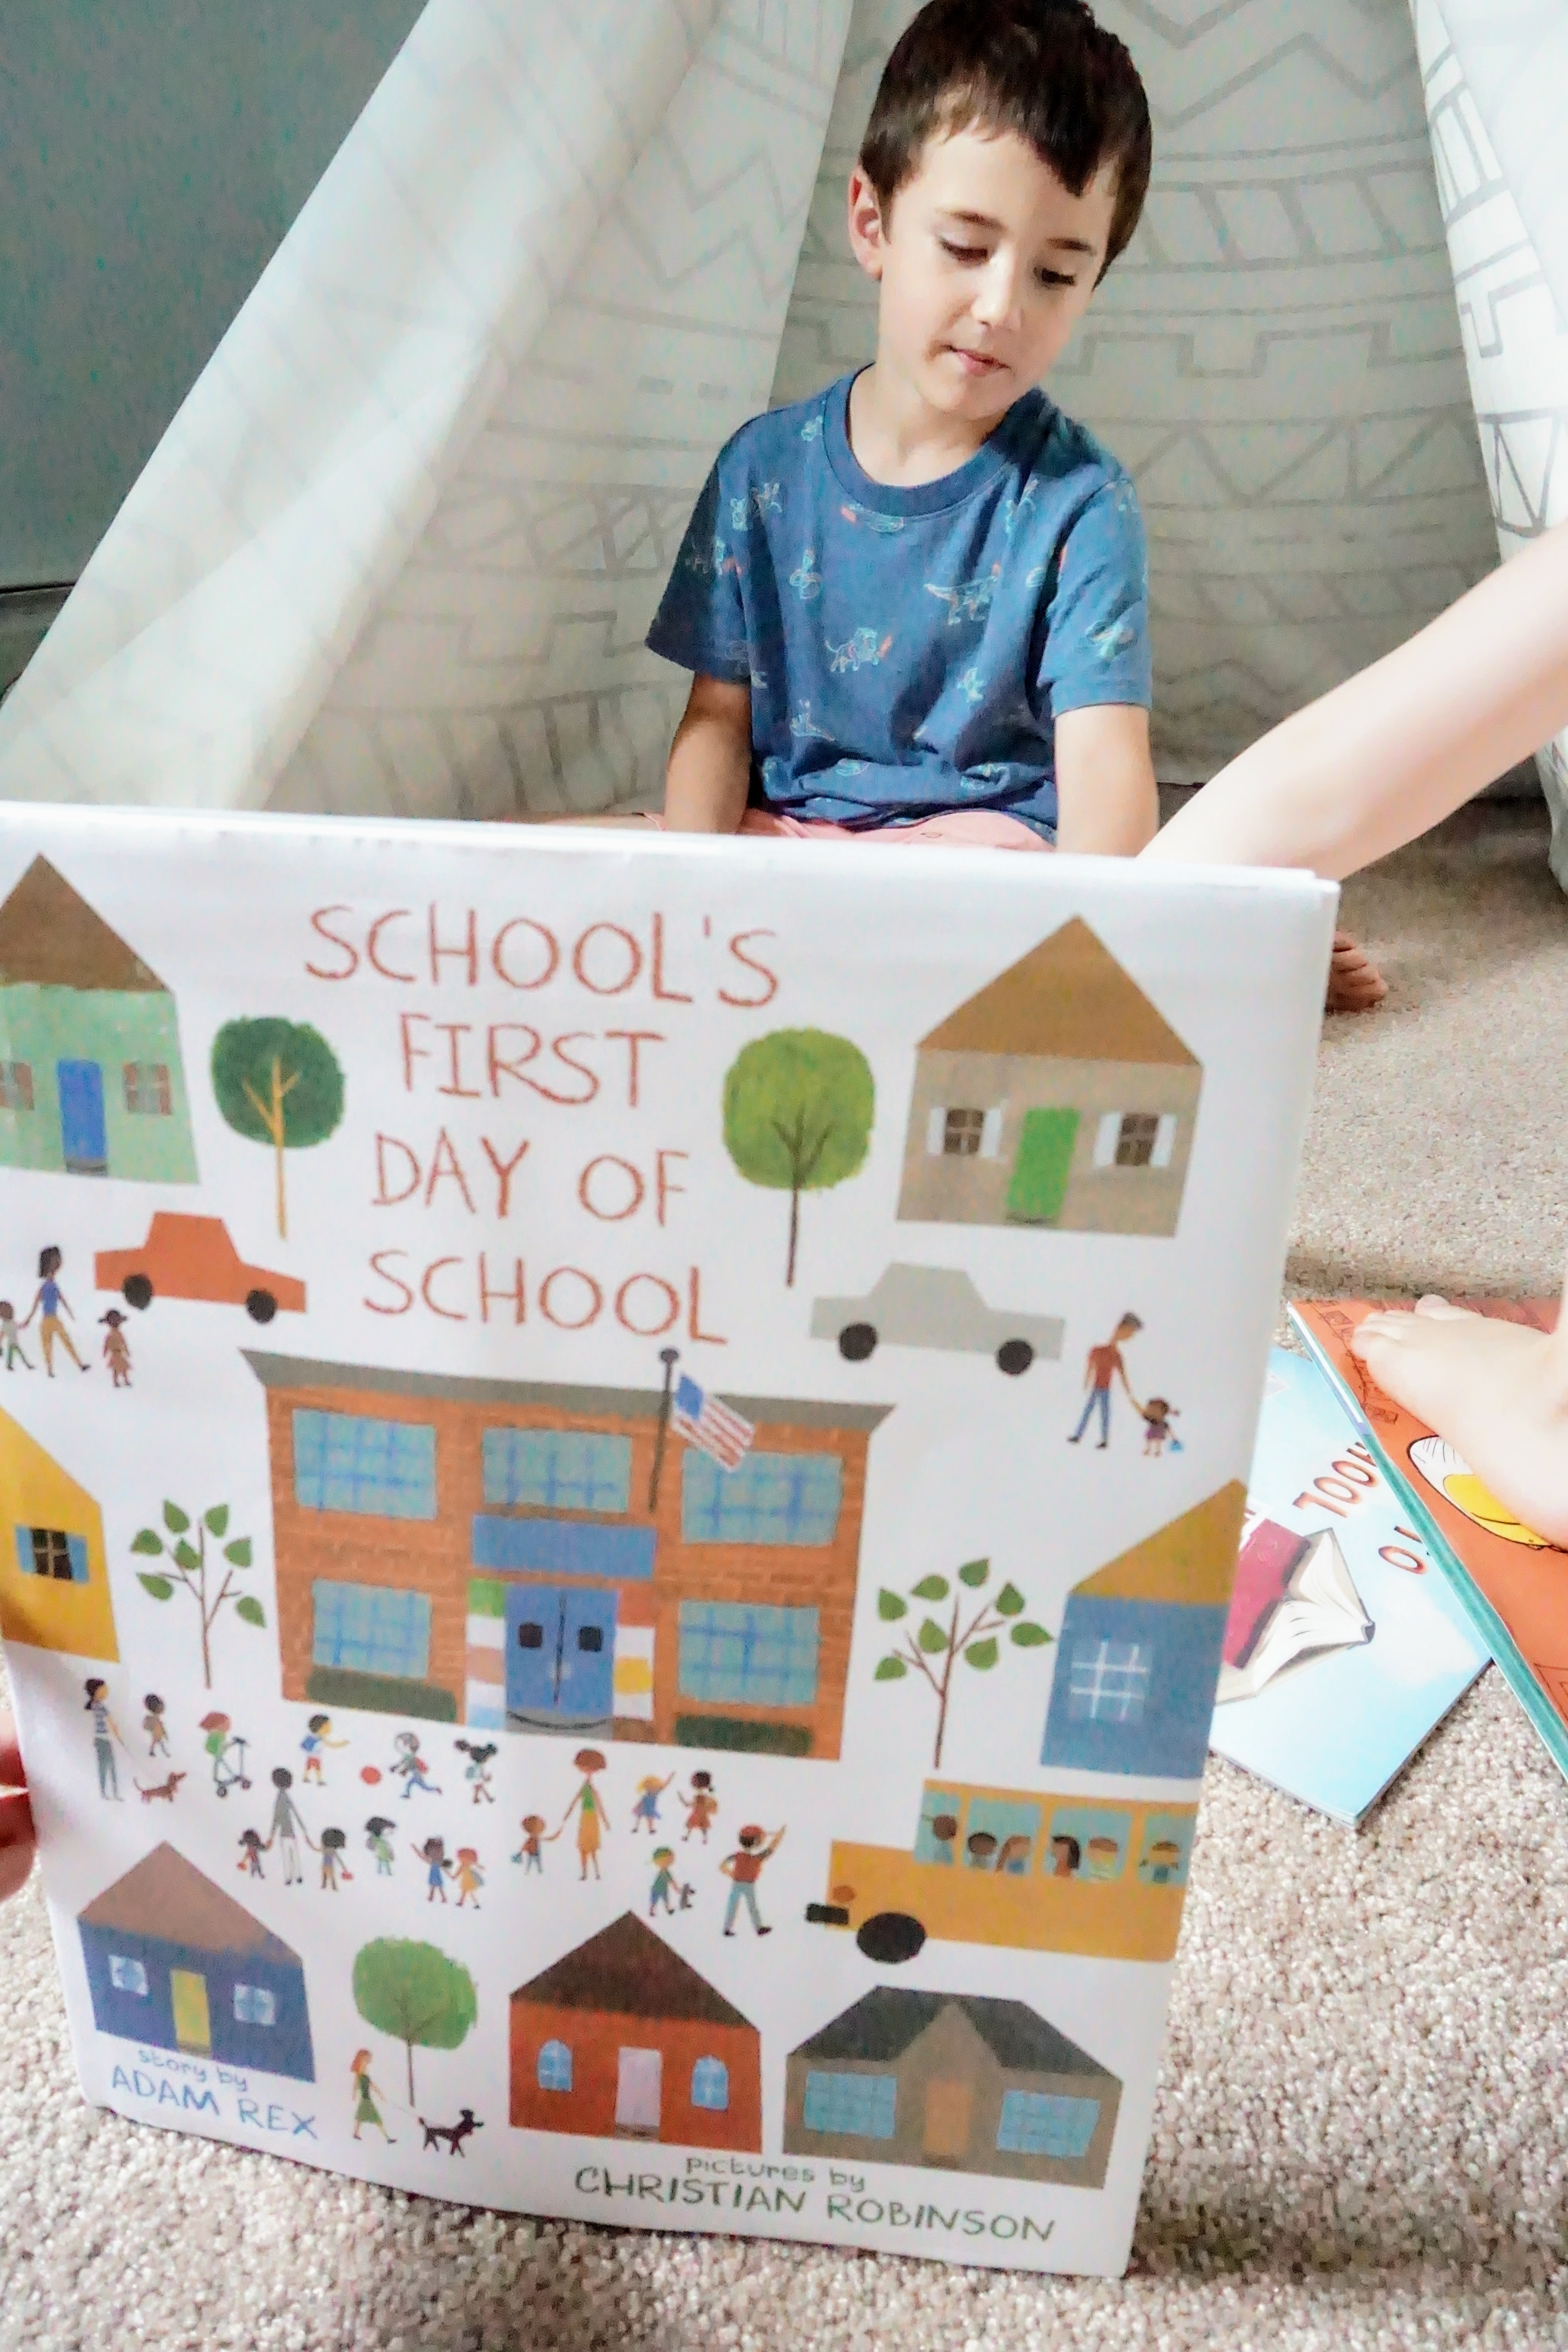 School's First Day of School picture book - kid lit